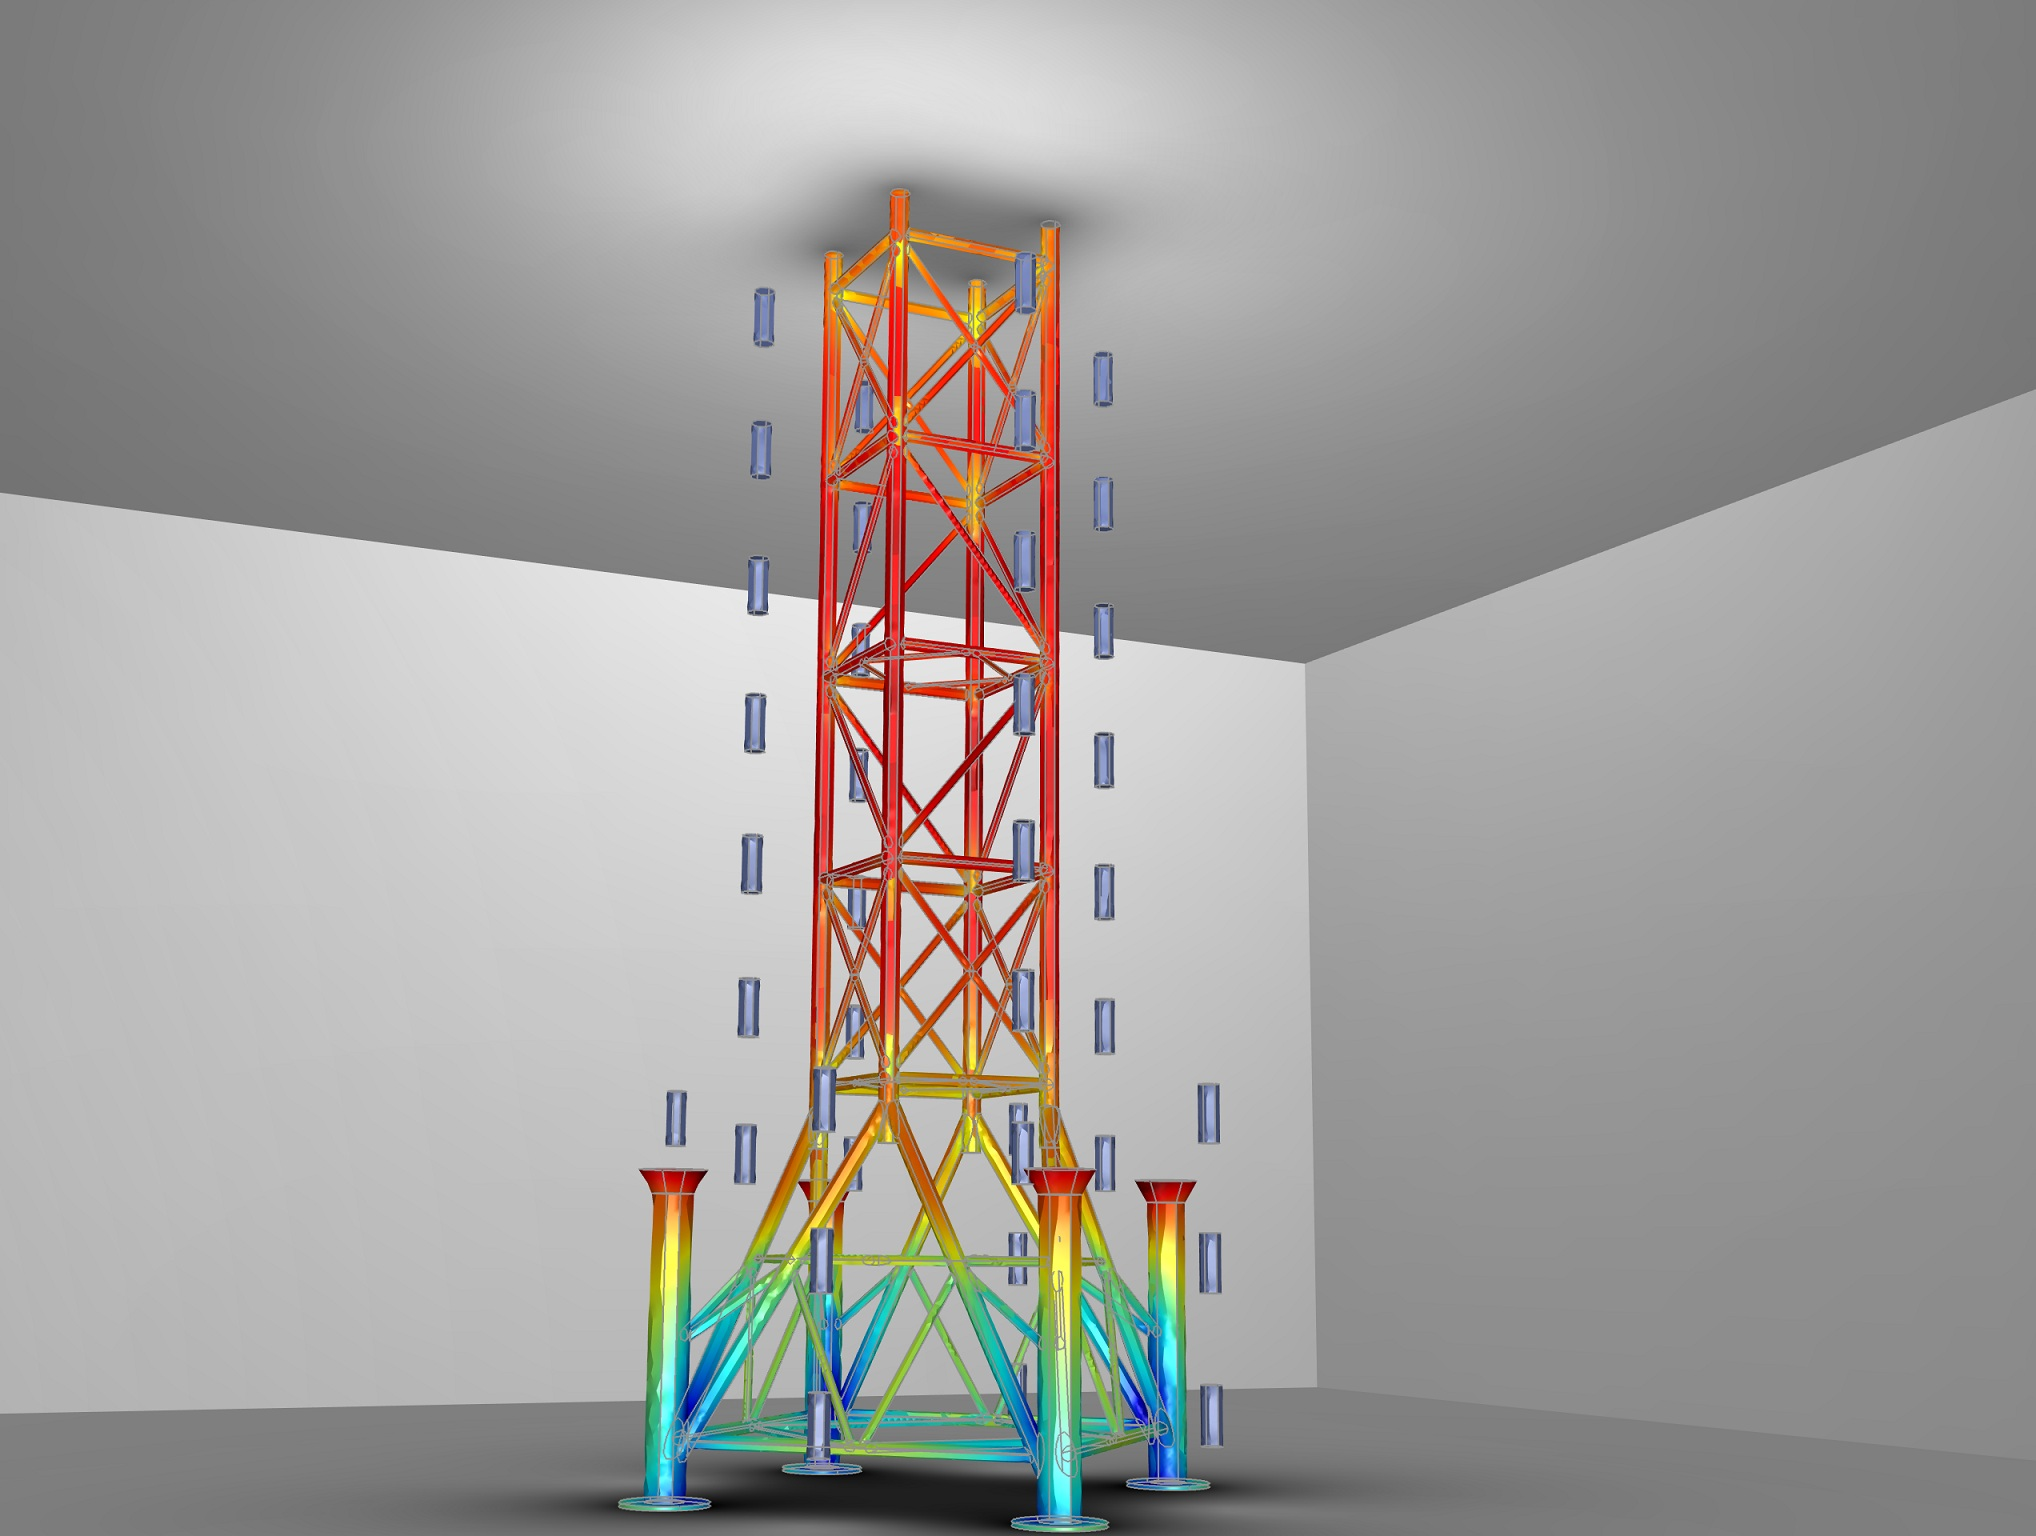 Model of an Oil Rig in the COMSOL Multiphysics Corrosion Module